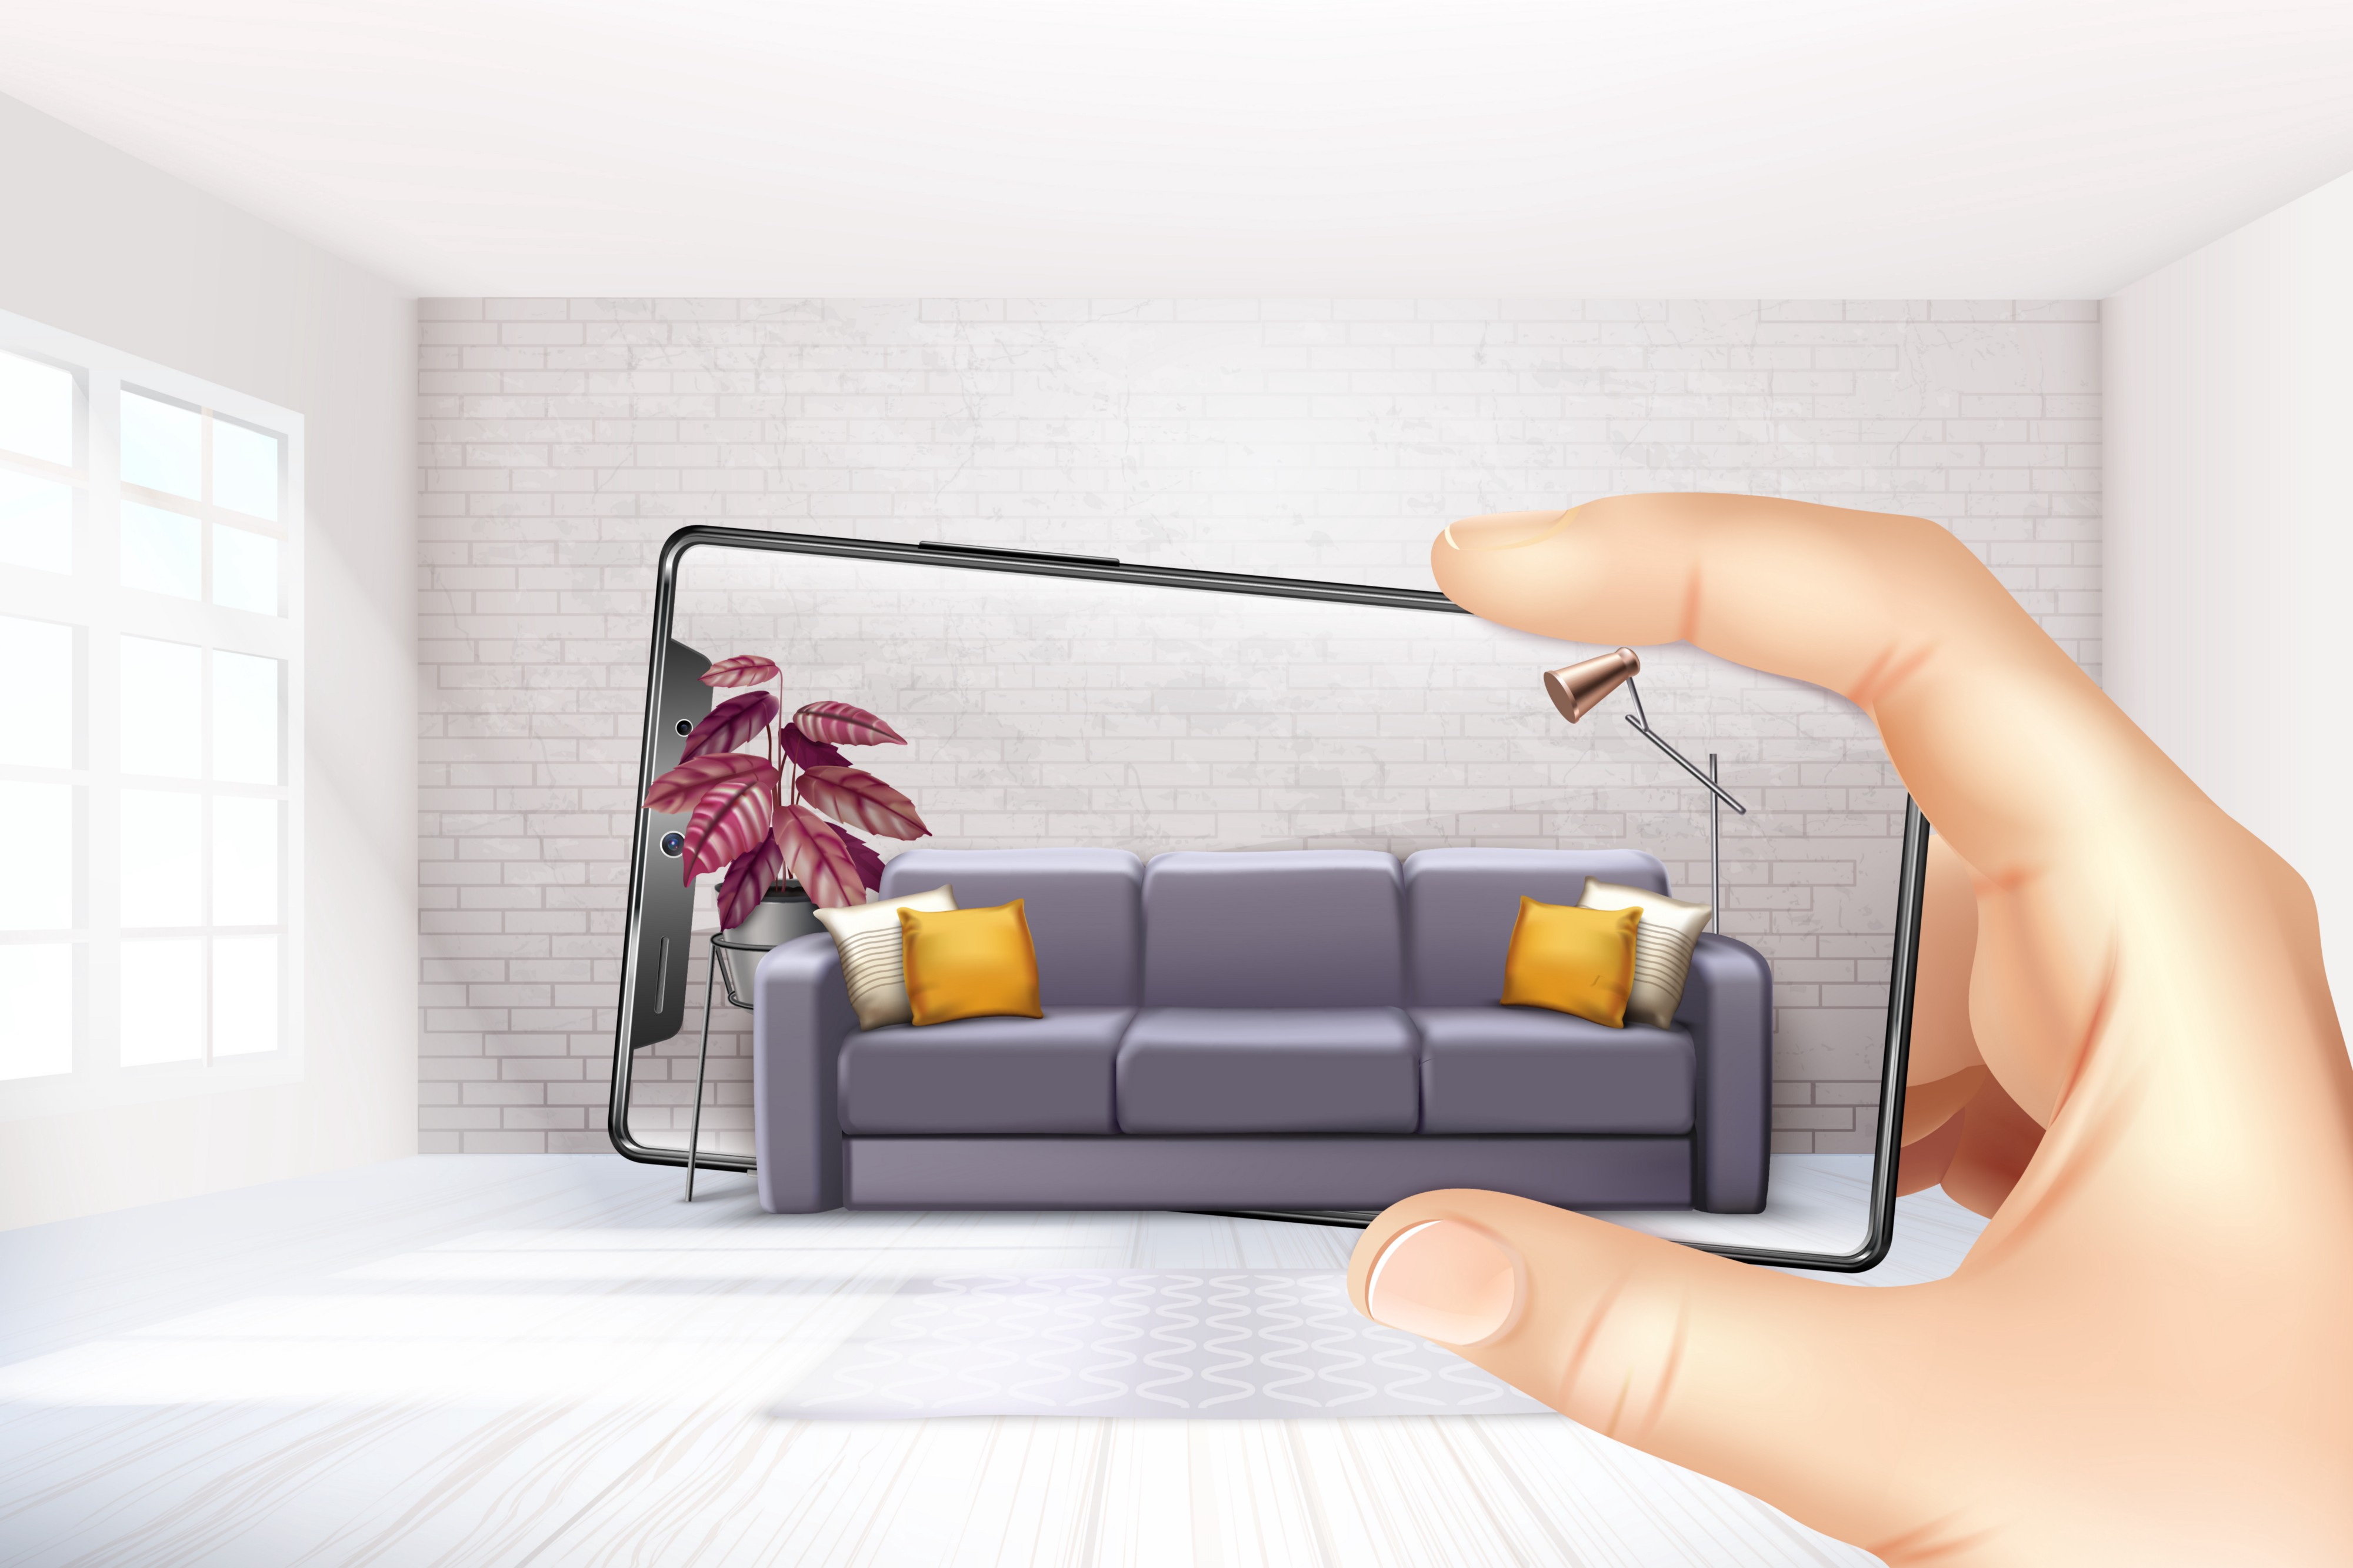 A graphic representation  of a cell phone on the hand of an user who visualize a sofa in an empty room. This experience is possible using Augmented Reality and allows us to increase ecommerce sales.